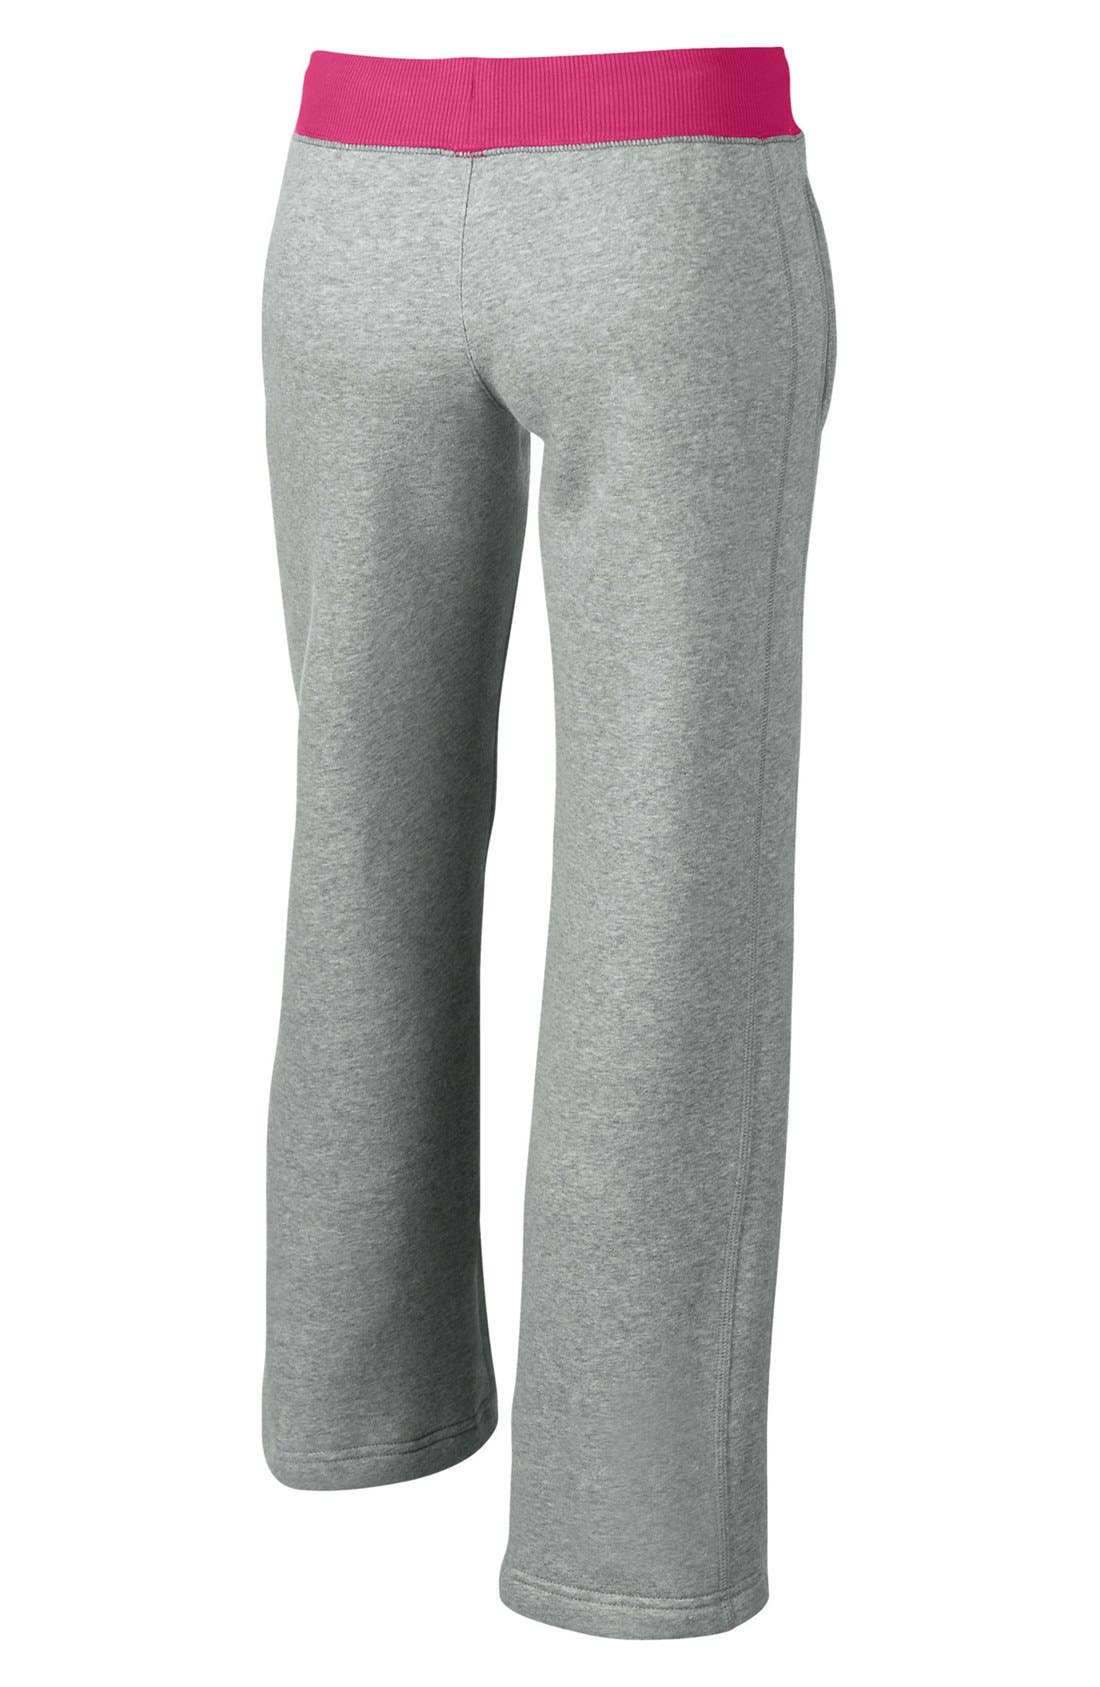 Alternate Image 2  - Nike 'N40' Fleece Pants (Little Girls & Big Girls)